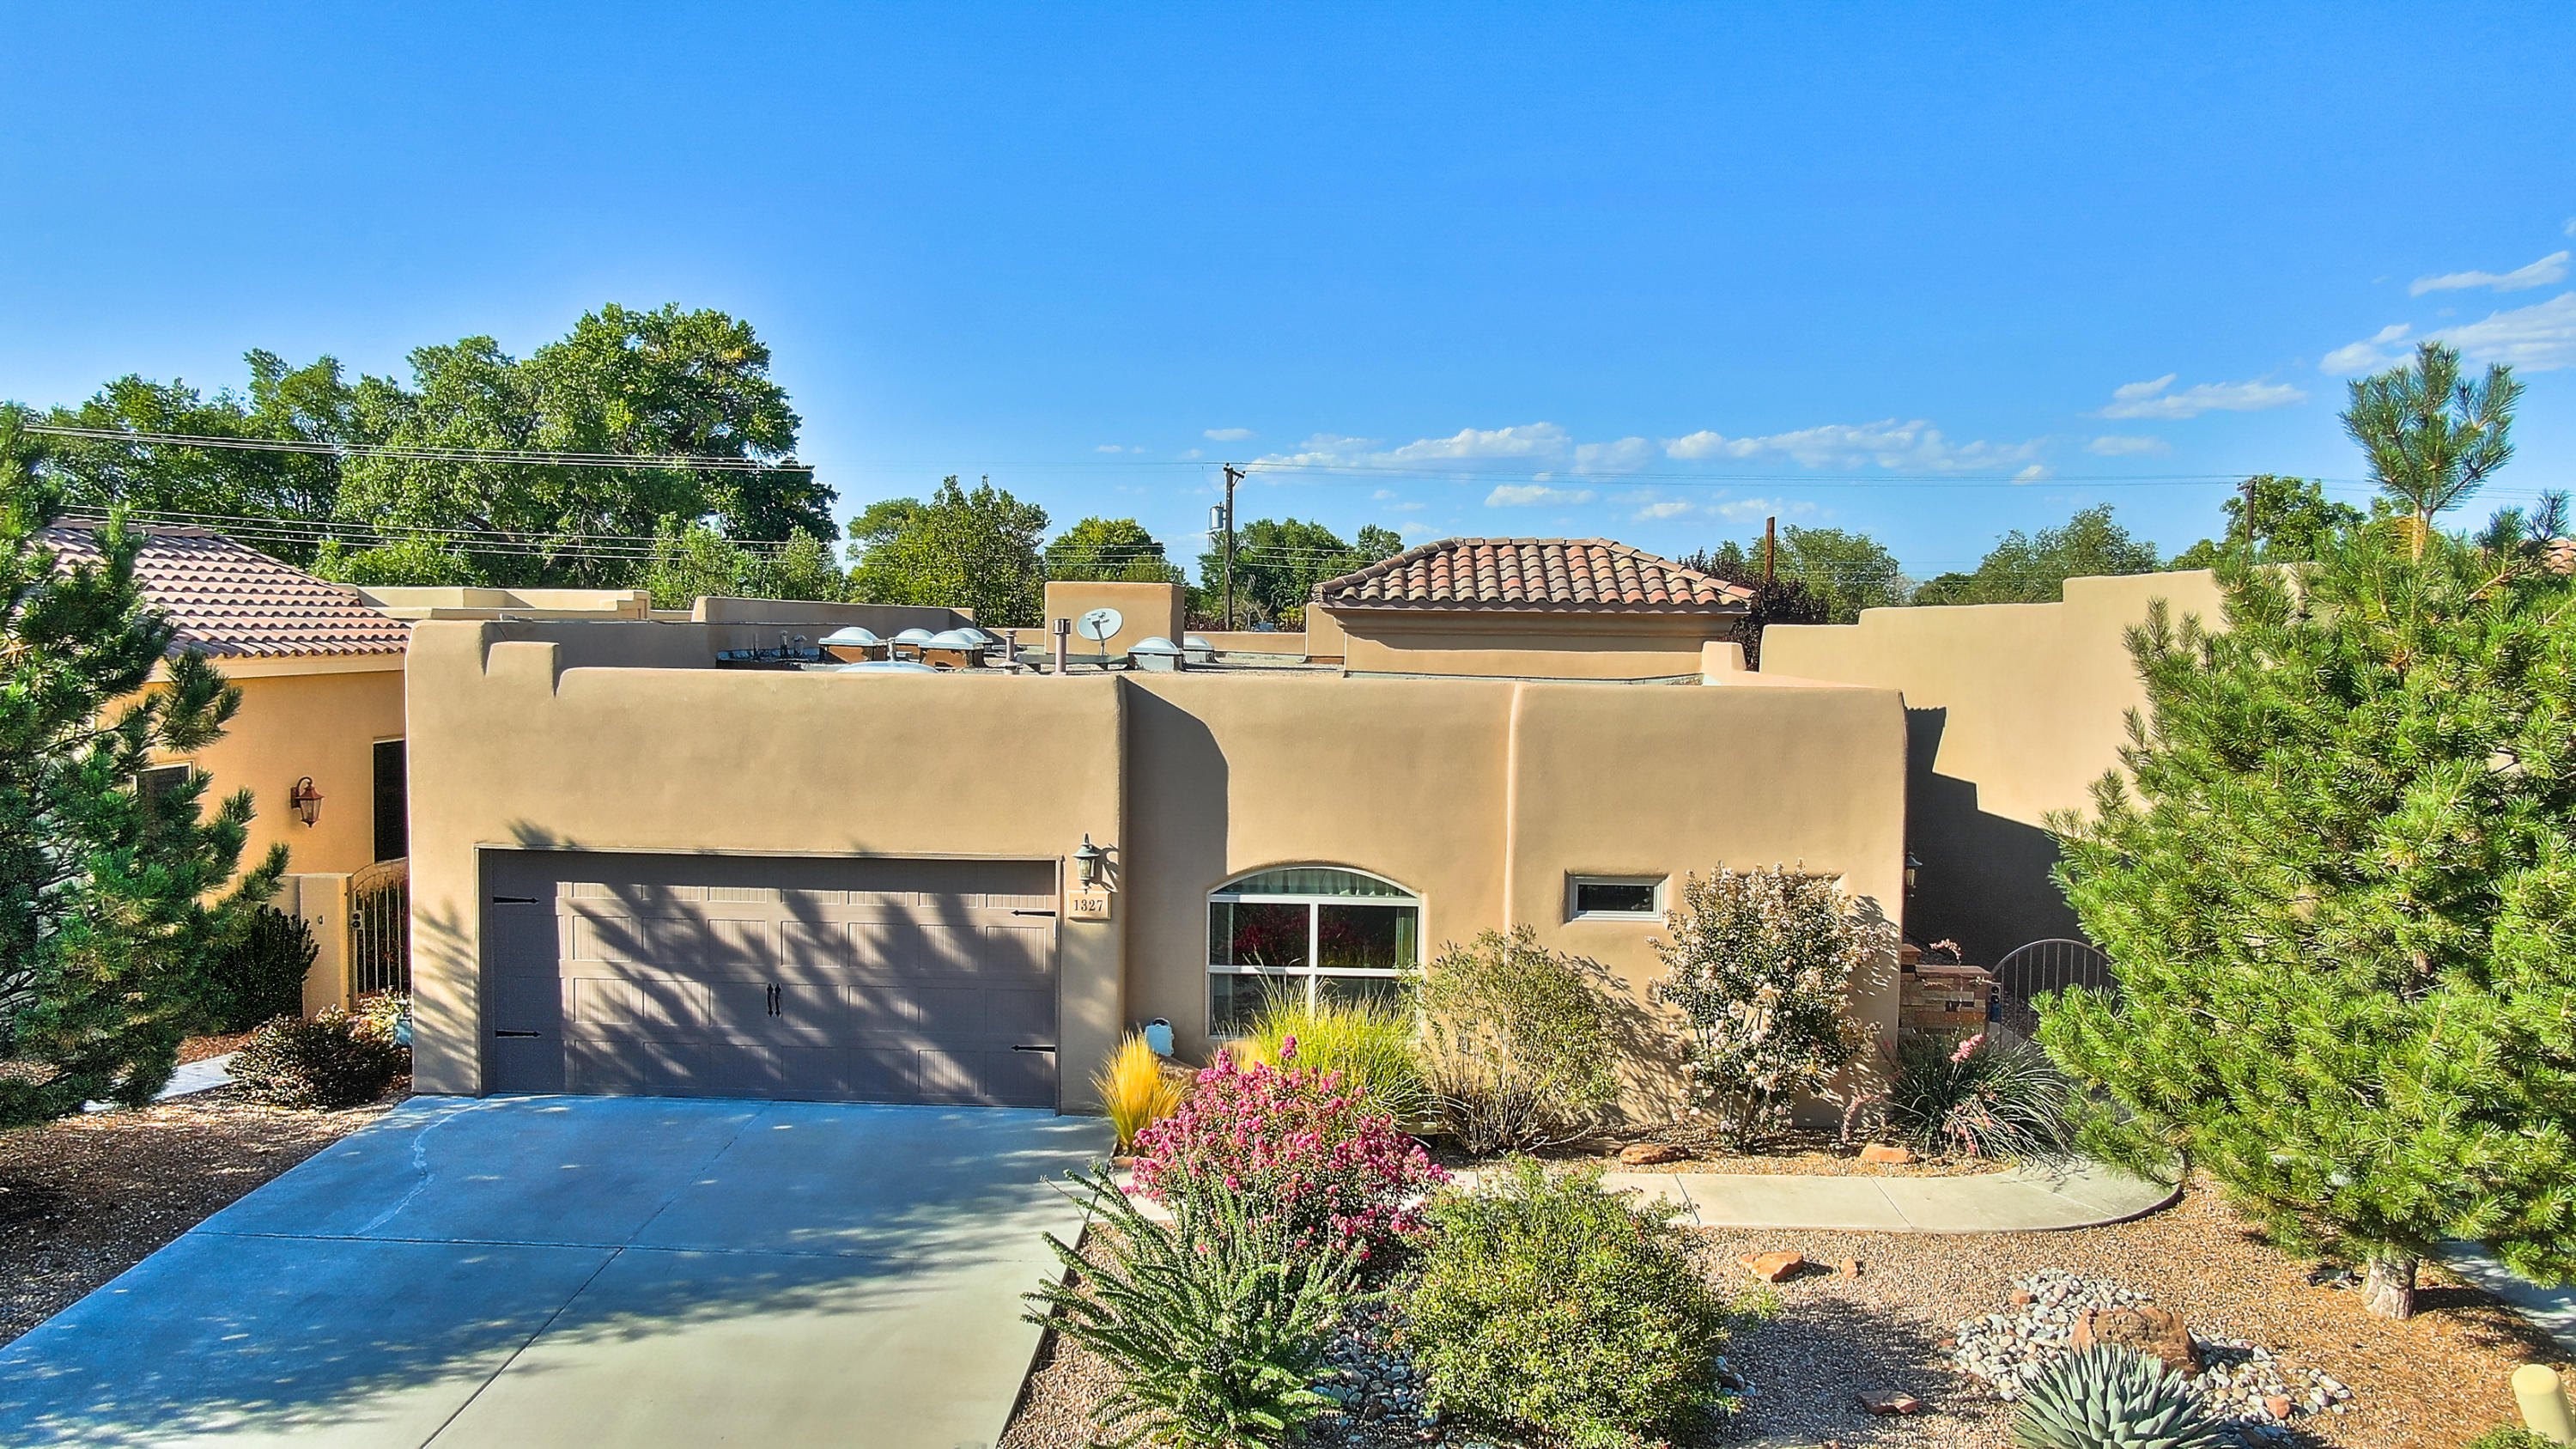 The perfect celebration of contemporary Southwestern design nestled in the heart of Albuquerque's North Valley! Gracious sun filled entry leads to expansive, open, great room with raised ceilings, and wood burning classic Kiva fireplace . Open kitchen with snack bar, custom cabinets, granite counters and upgraded appliances. Separate service room with wet sink.Informal dining space. Separated Owners quarters has a private bath with dual vanities, jetted tub,separate shower and walk-in closet! 2 additional bedrooms share a Jack and Jill full bath! Loads of skylights flood this home with natural light!Cozy rear patio out back! Ceiling fans, glass block accents and more! 2 car finished garage. Gated entry!Conveniently located for all of your needs! This Pueblo charmer won't wait! See it today